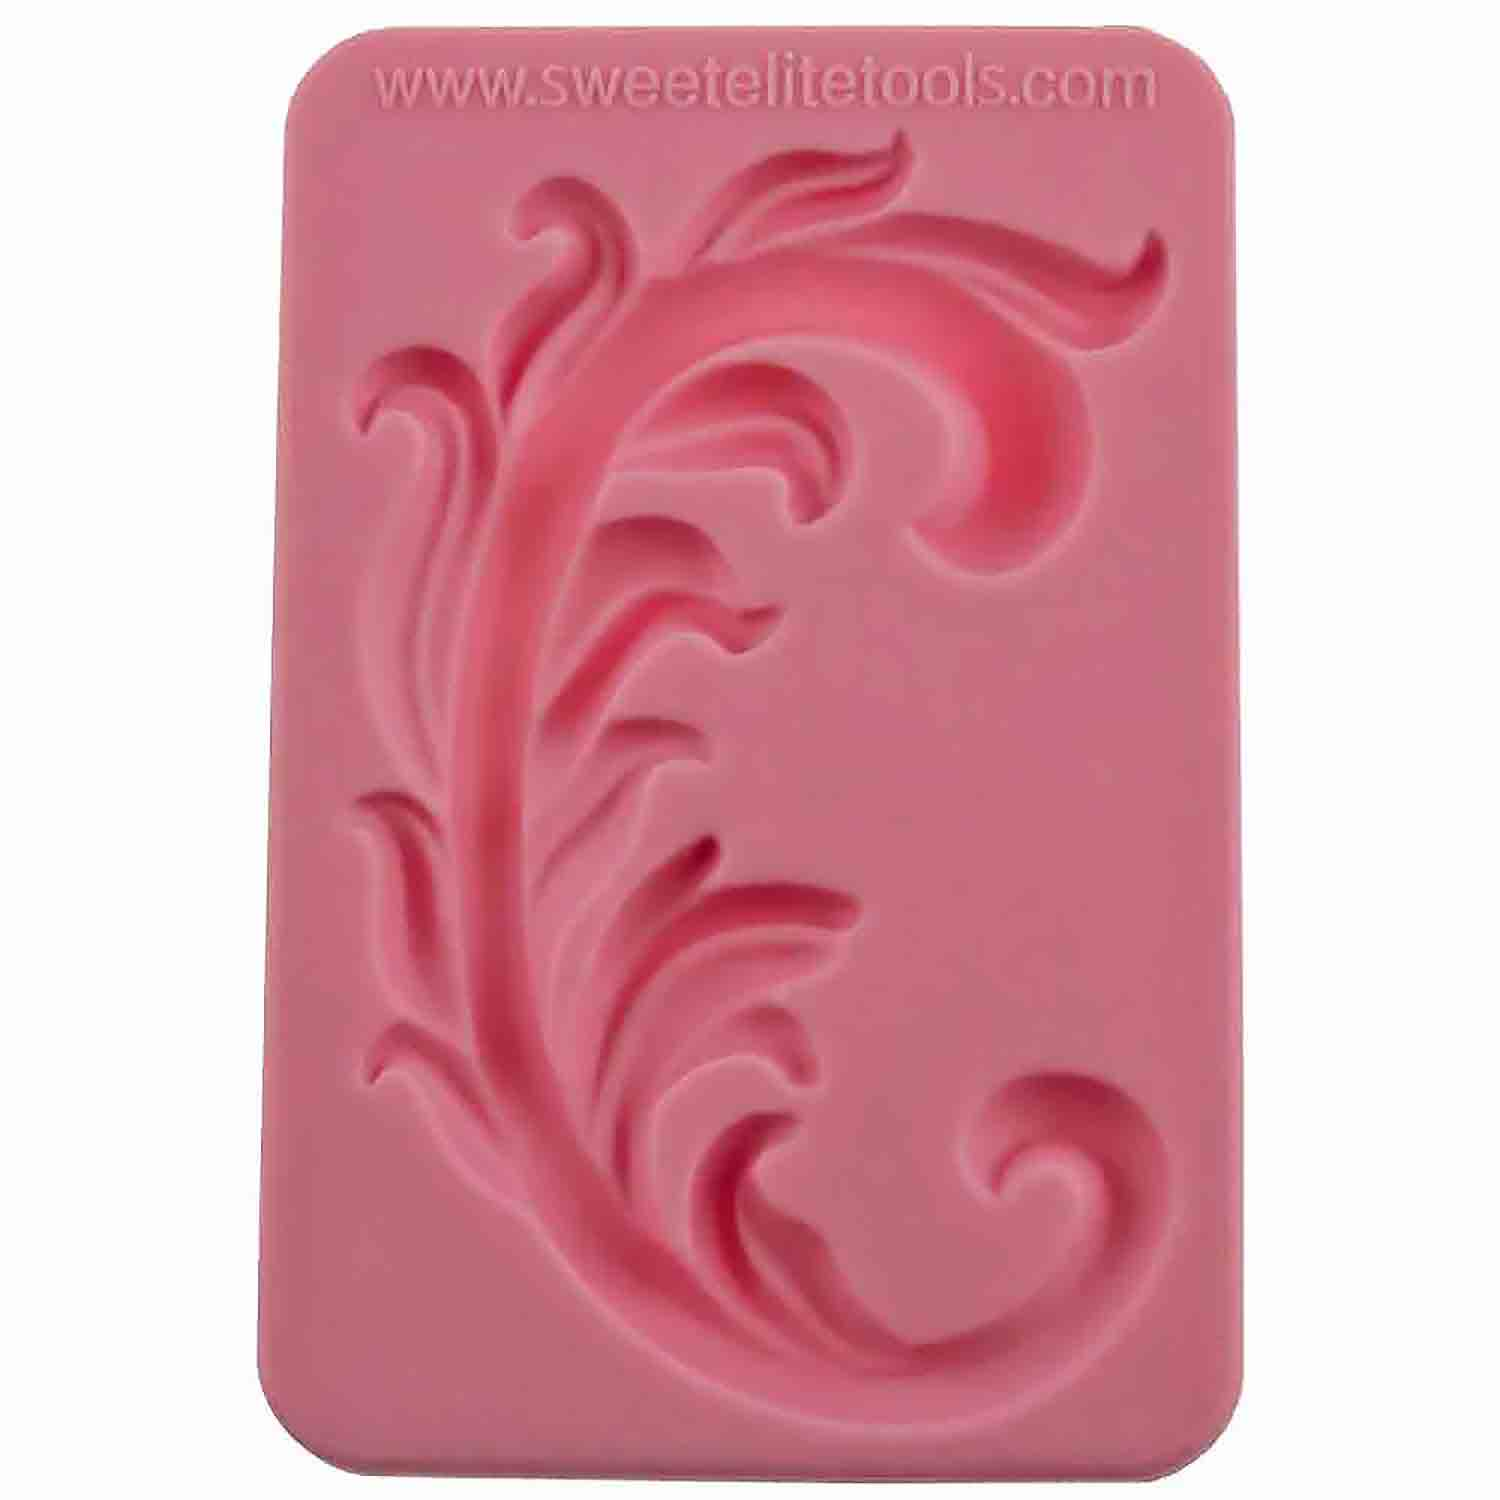 Flora 2 Silicone Mold by Colette Peters